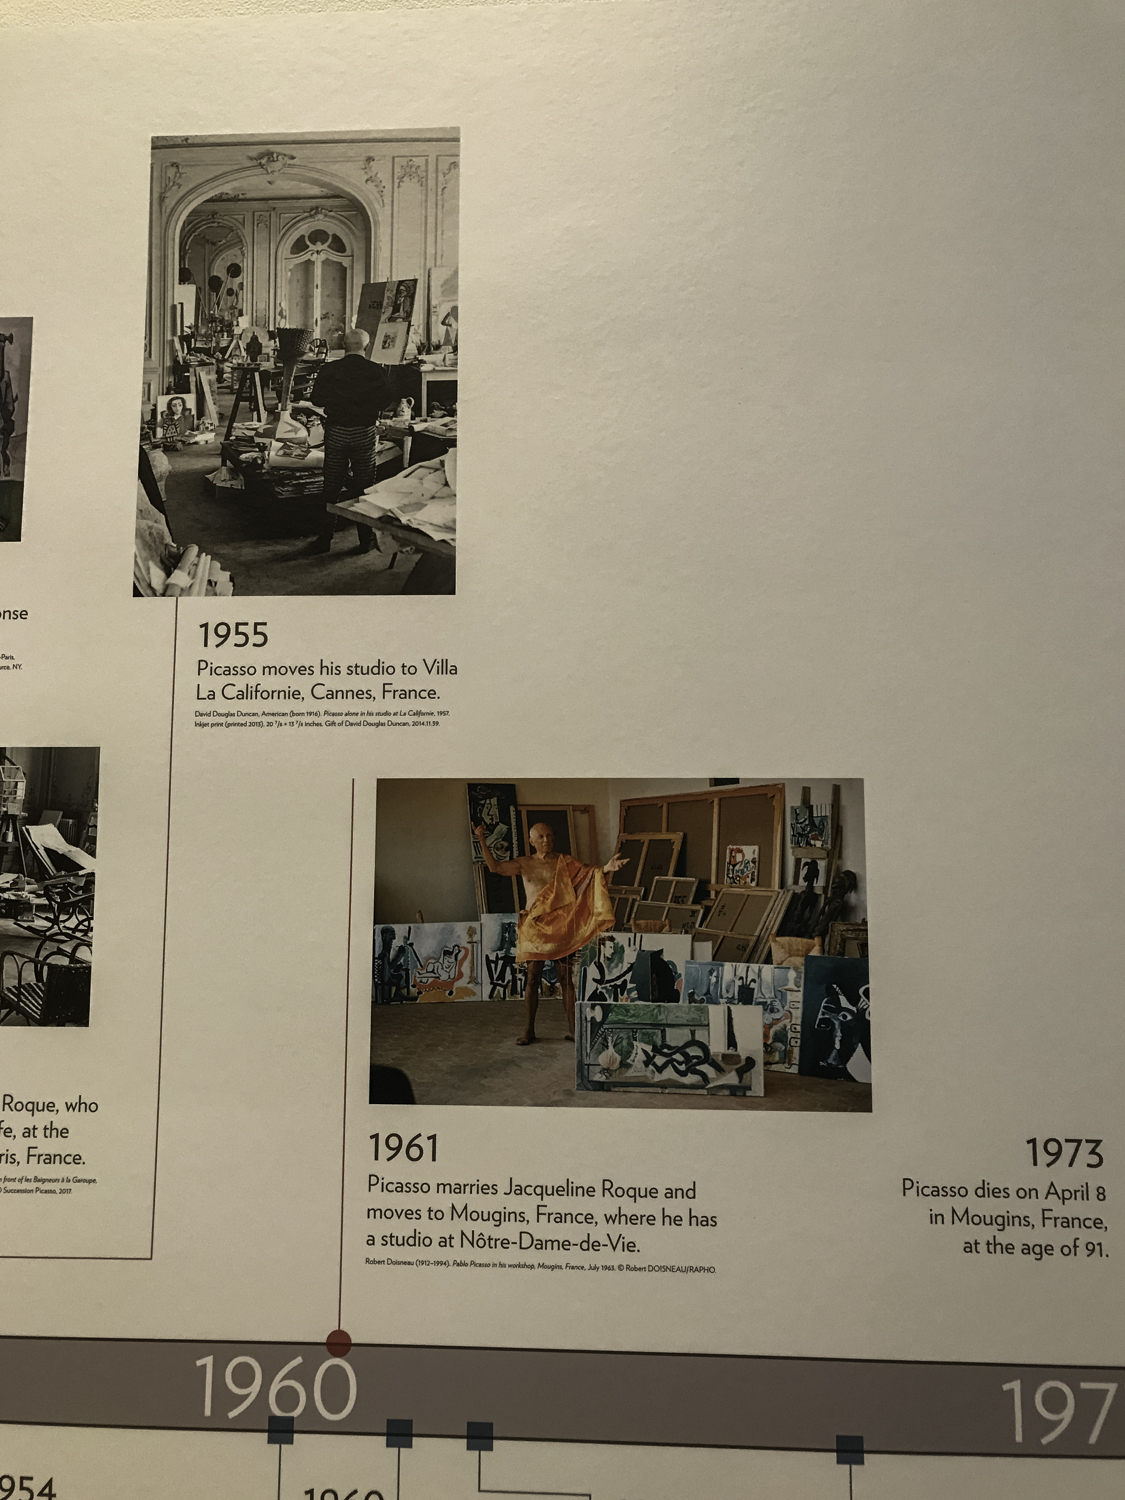 There was a long wall that featured a timeline of Picasso's life, showing significant events.  This is one of a number of photographs taken of the the whole thing.  It was useful to me to see how both his personal and artistic life evolved.